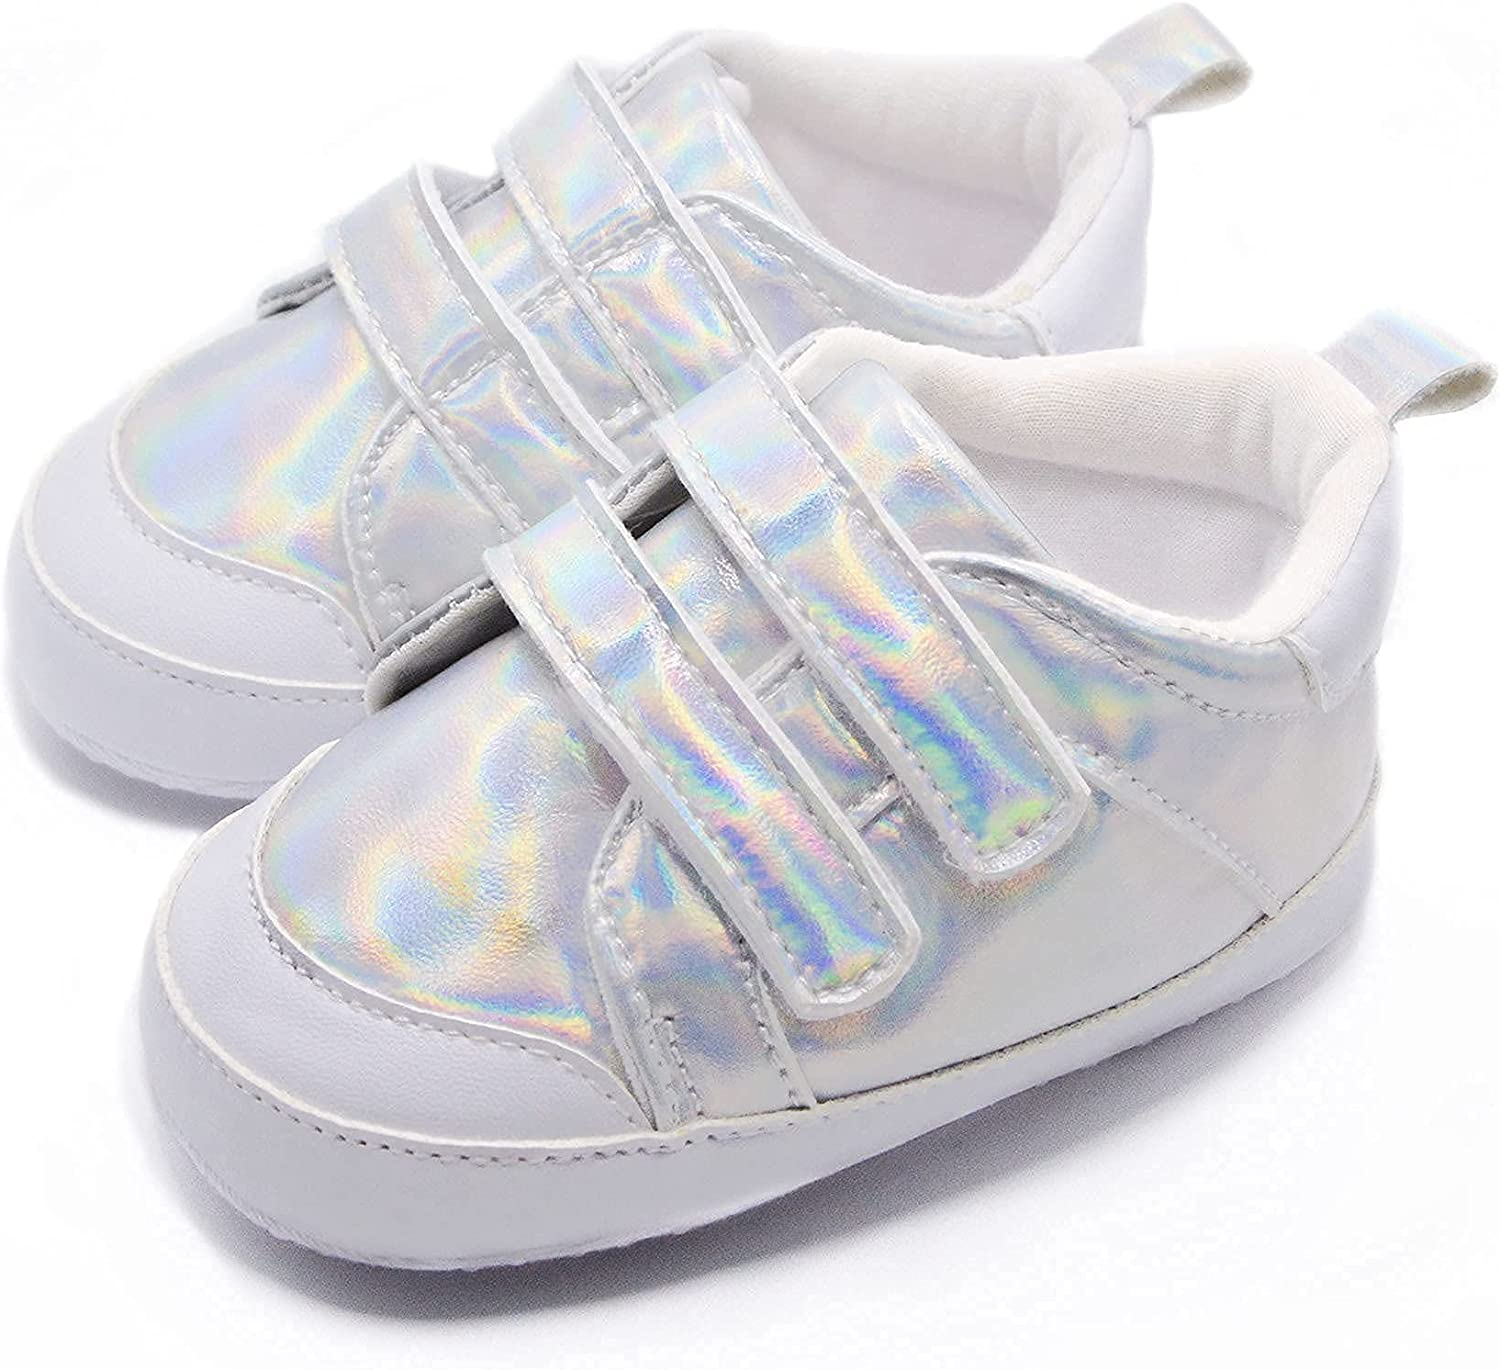 Mamimee Baby Shoes Newborn Infant Pre-Walking Shoes with Anti-Slip Sole Fashion Sneaker Unisex